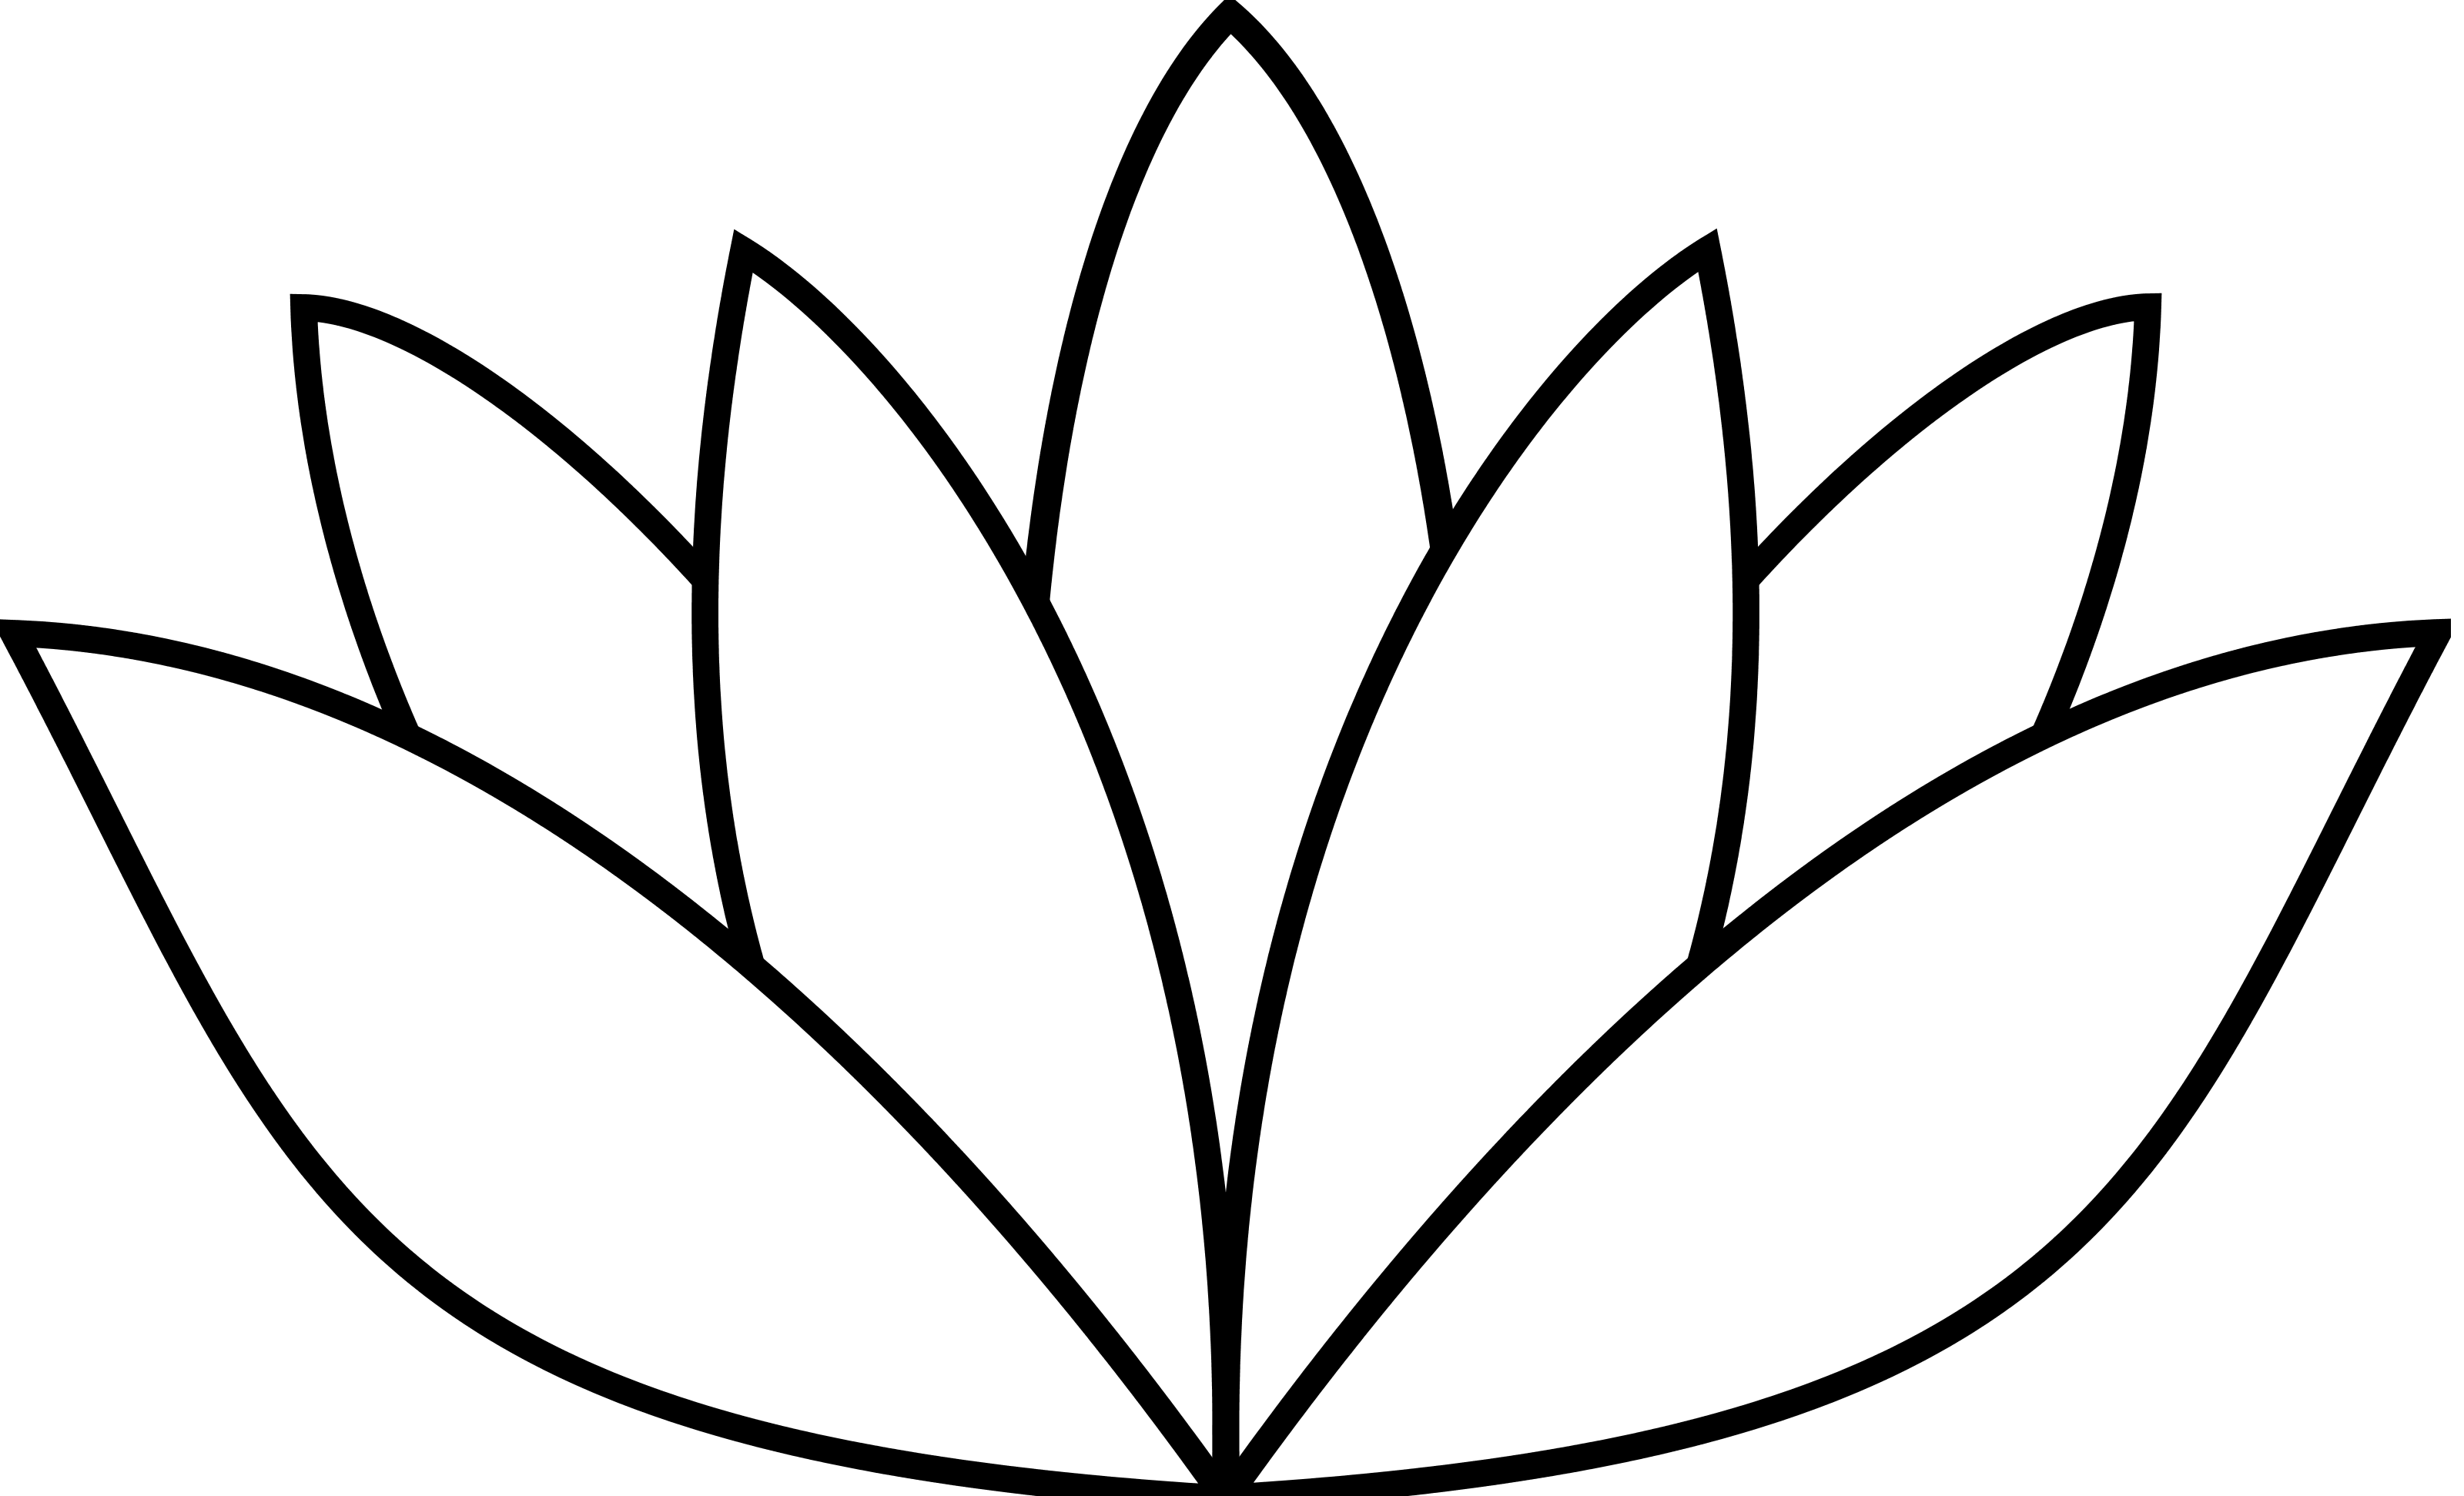 svg royalty free Svg best lovely things. Lotus flower black and white clipart